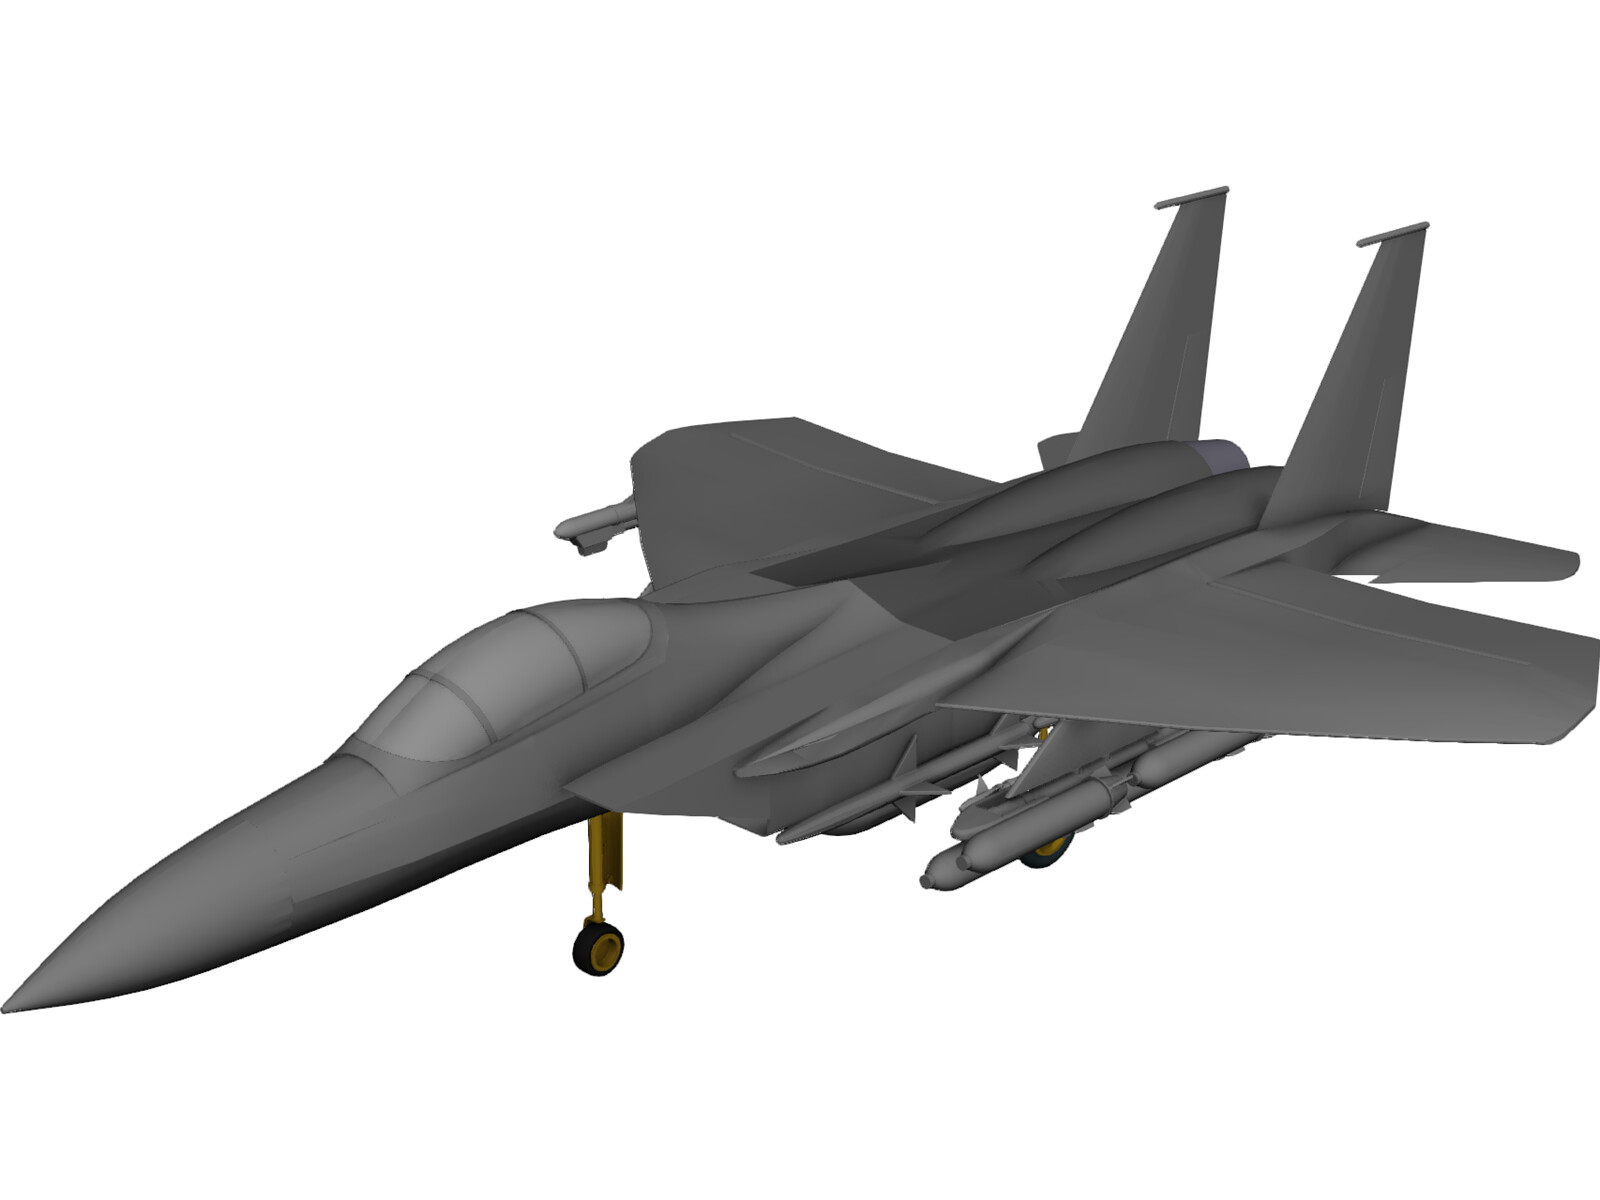 F-15A 3D CAD Model - 3D CAD Browser